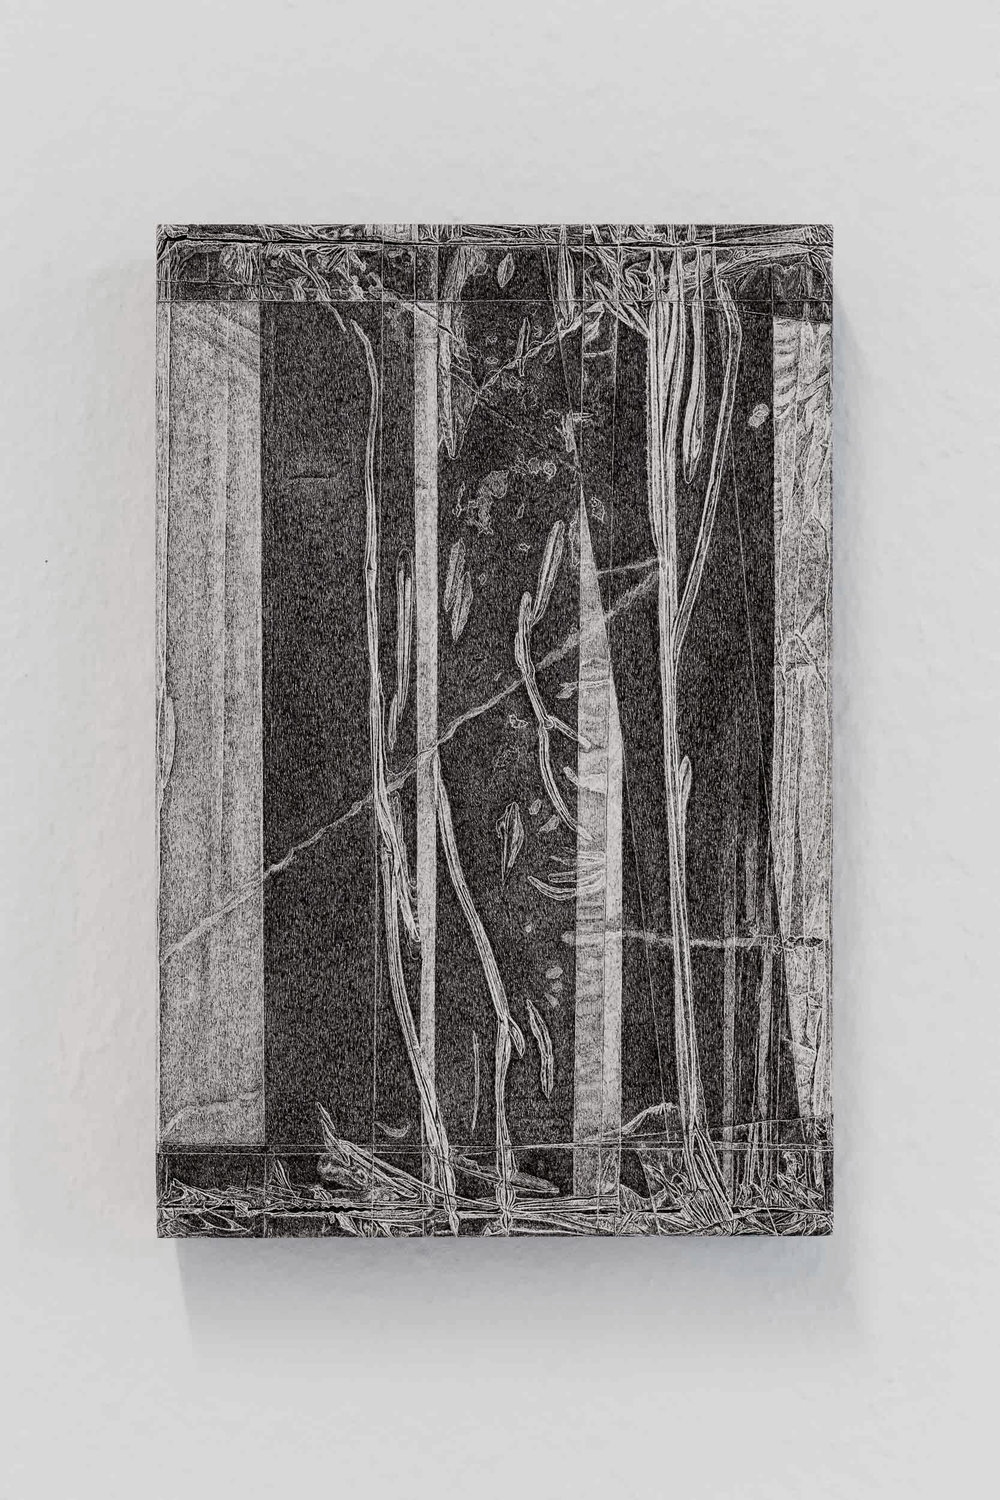 Kong Chun Hei,  Parcel , 2018, Ink on paper mounted on wooden frame, 20 x 30 x 5cm